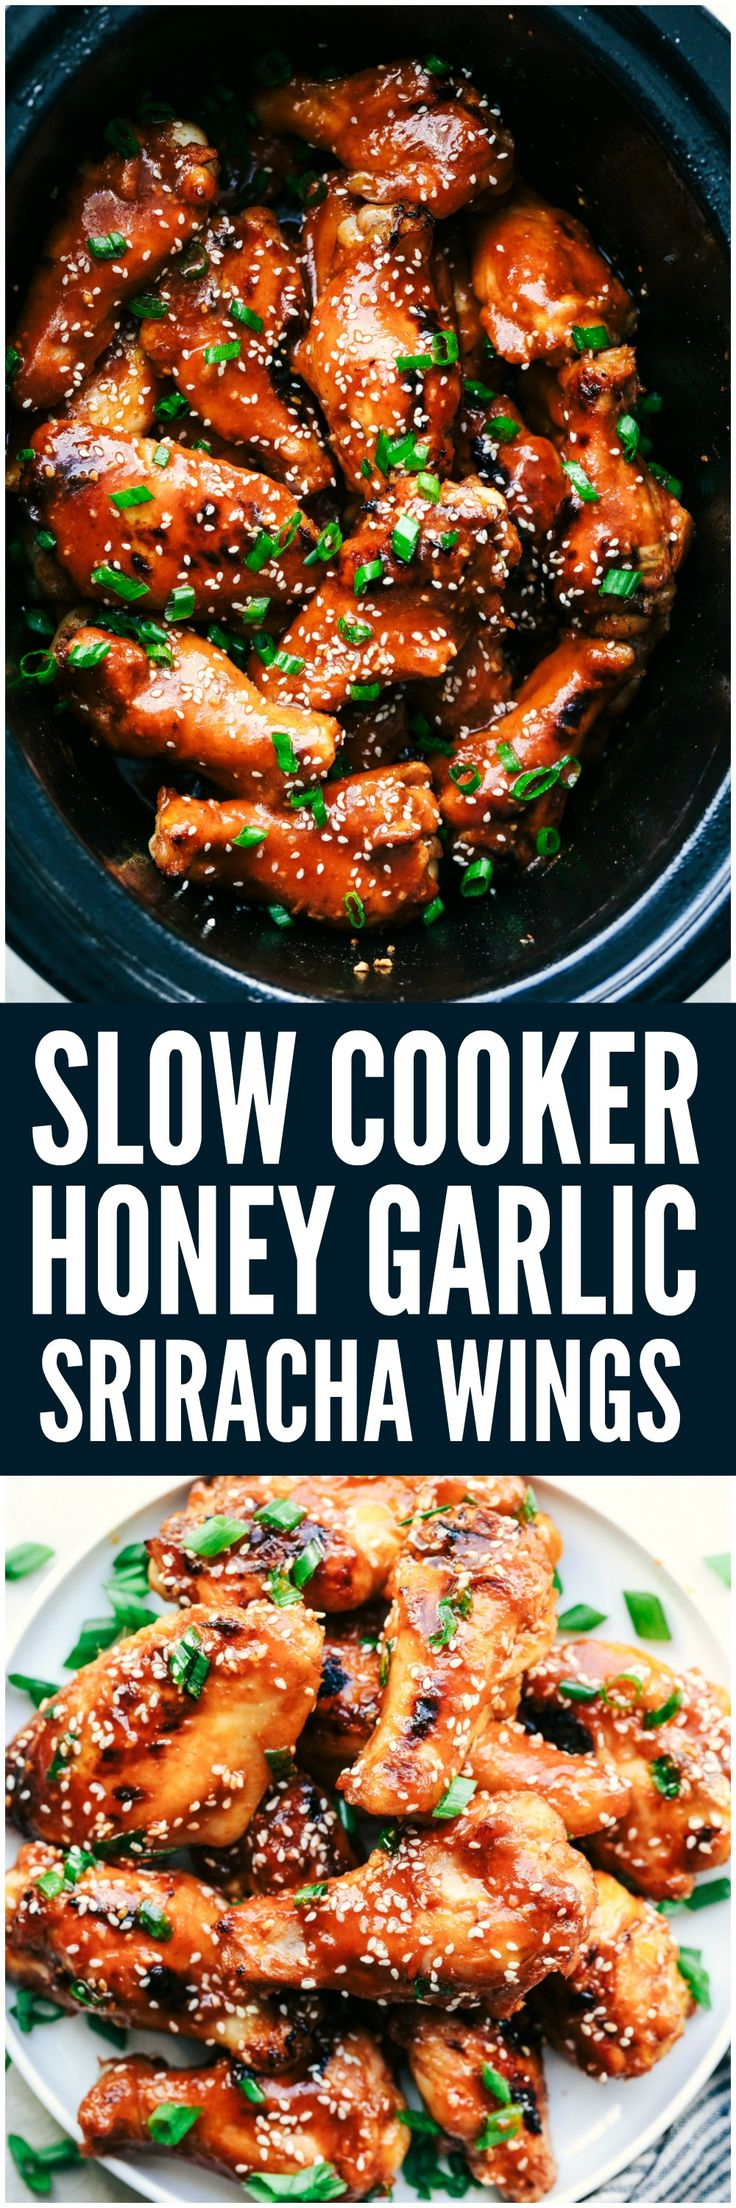 Slow Cooker Honey Garlic Sriracha Wings are super easy to make and have amazing sweet and spicy flavor!  They are fall off the bone tender and will be the hit at any party!